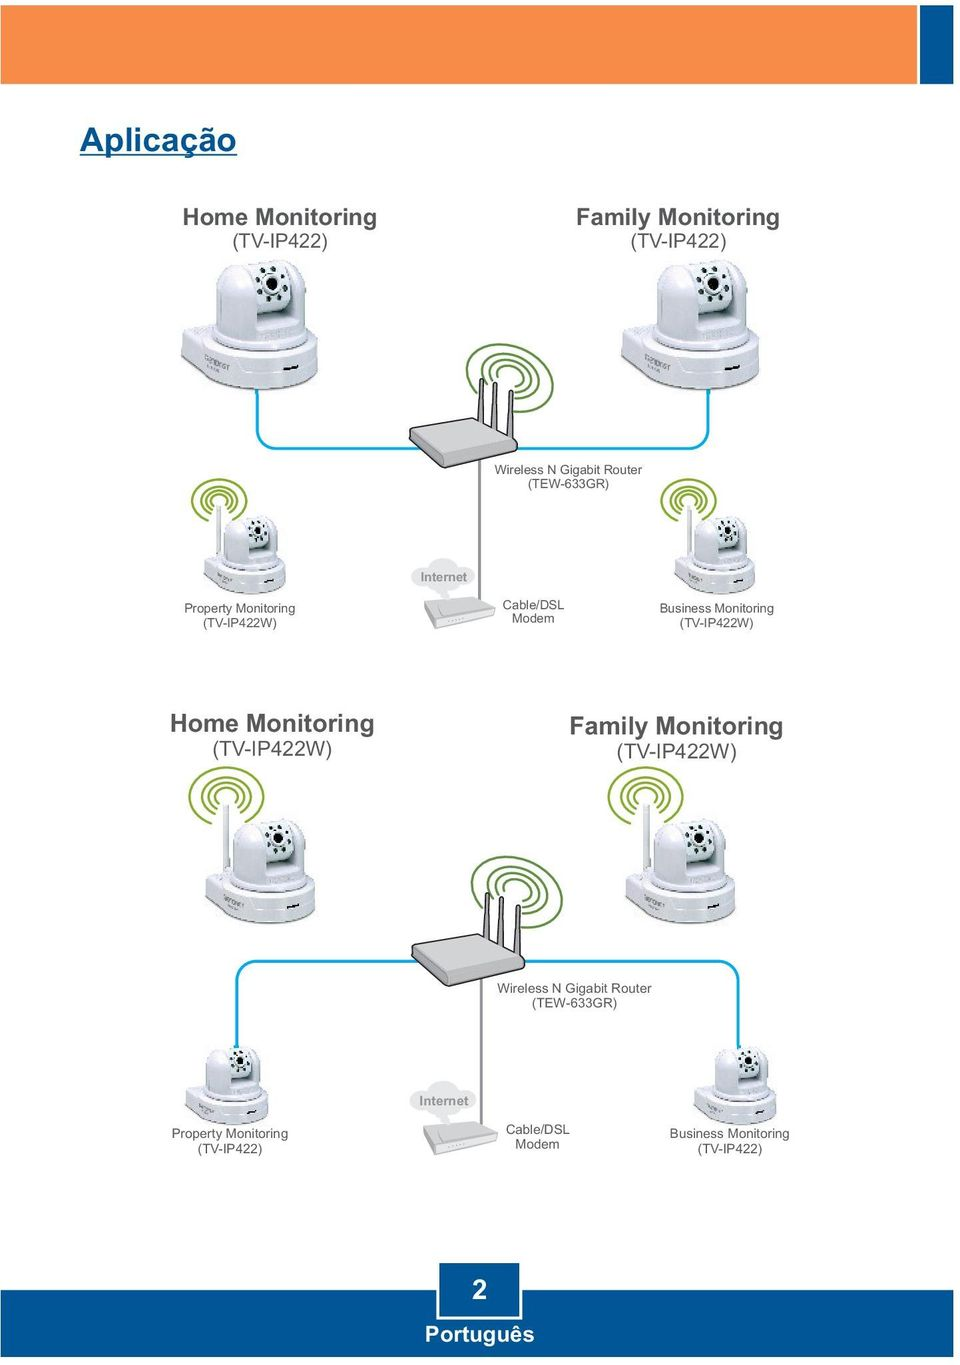 (TV-IP422W) Home Monitoring (TV-IP422W) Family Monitoring (TV-IP422W) Wireless N Gigabit